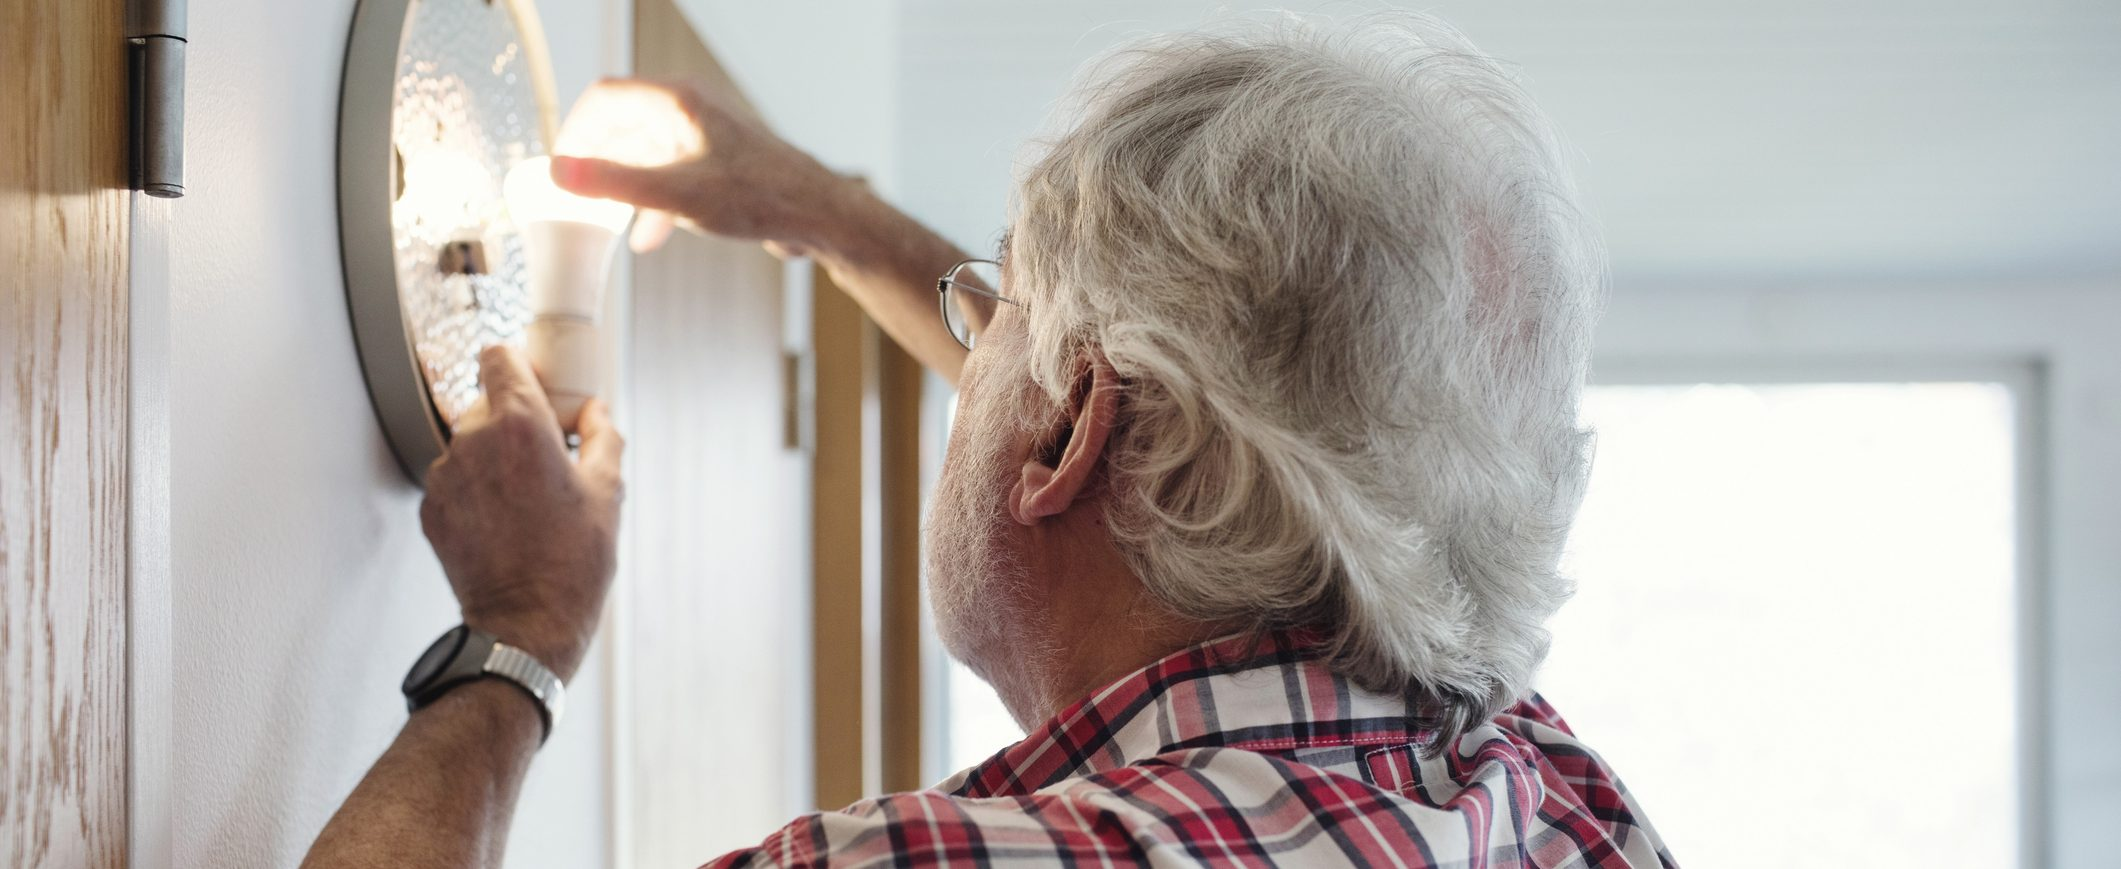 Man installs energy efficient light bulbs to help save money